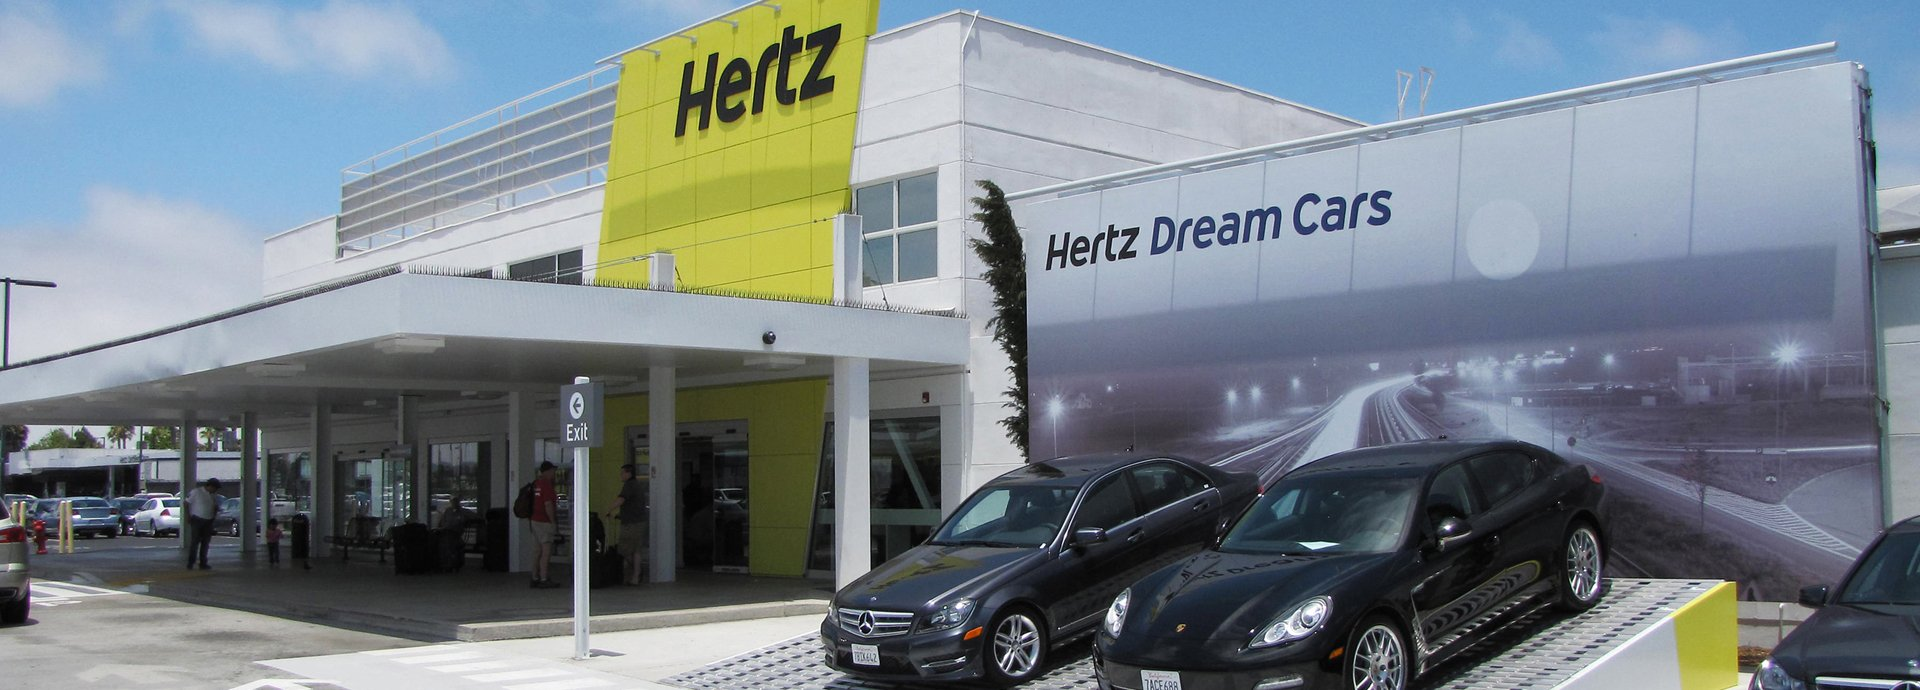 Hertz Miami Car Rental Deals